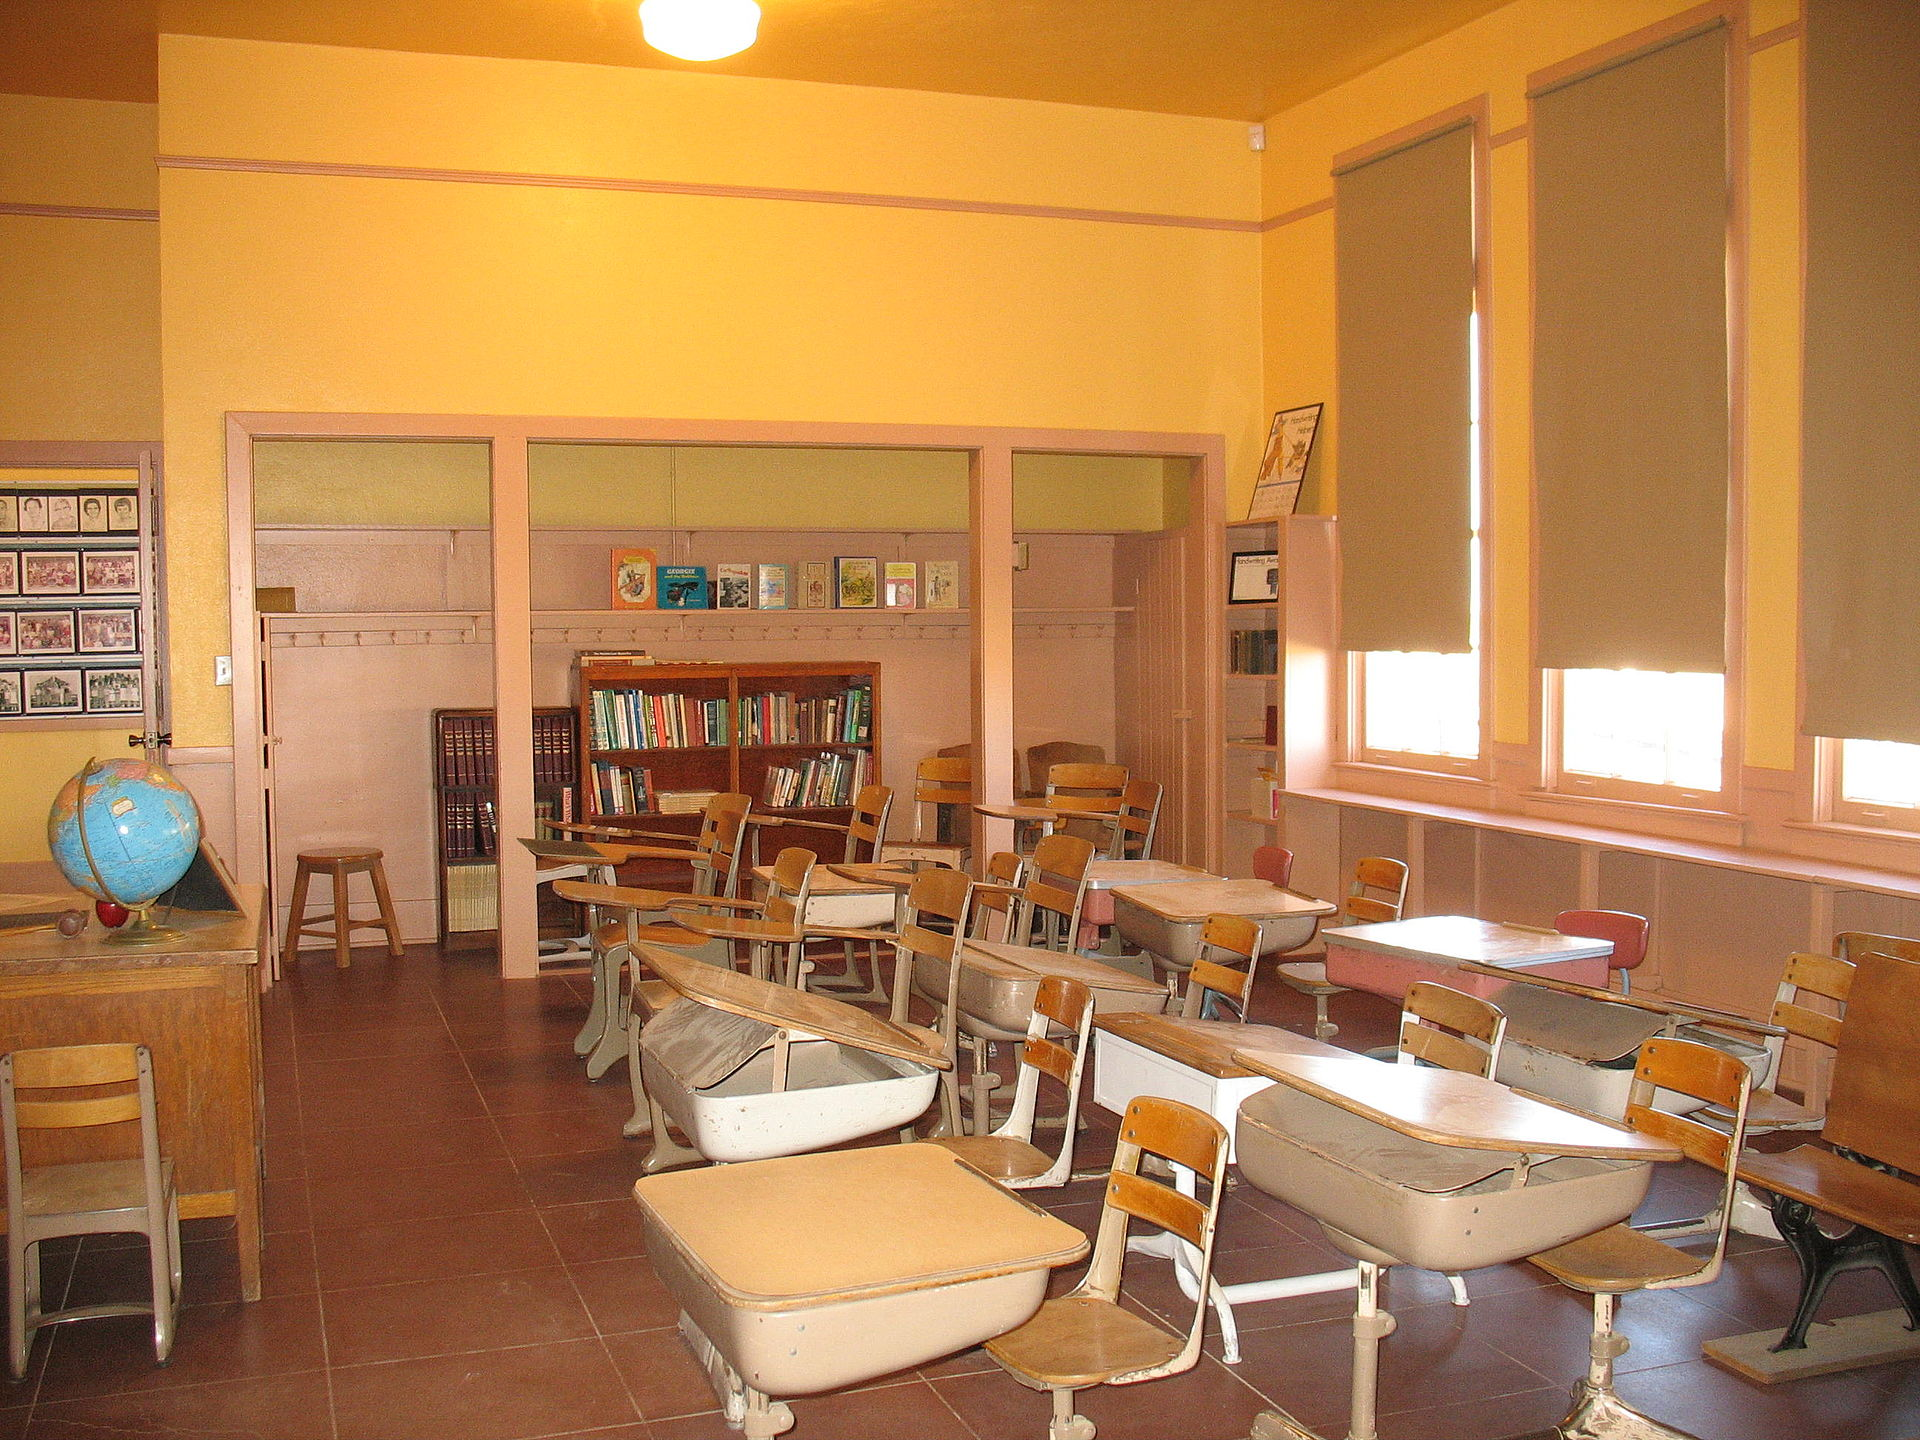 Interior of building. Replication of what a classroom would have looked in during Rittenhouse's early years